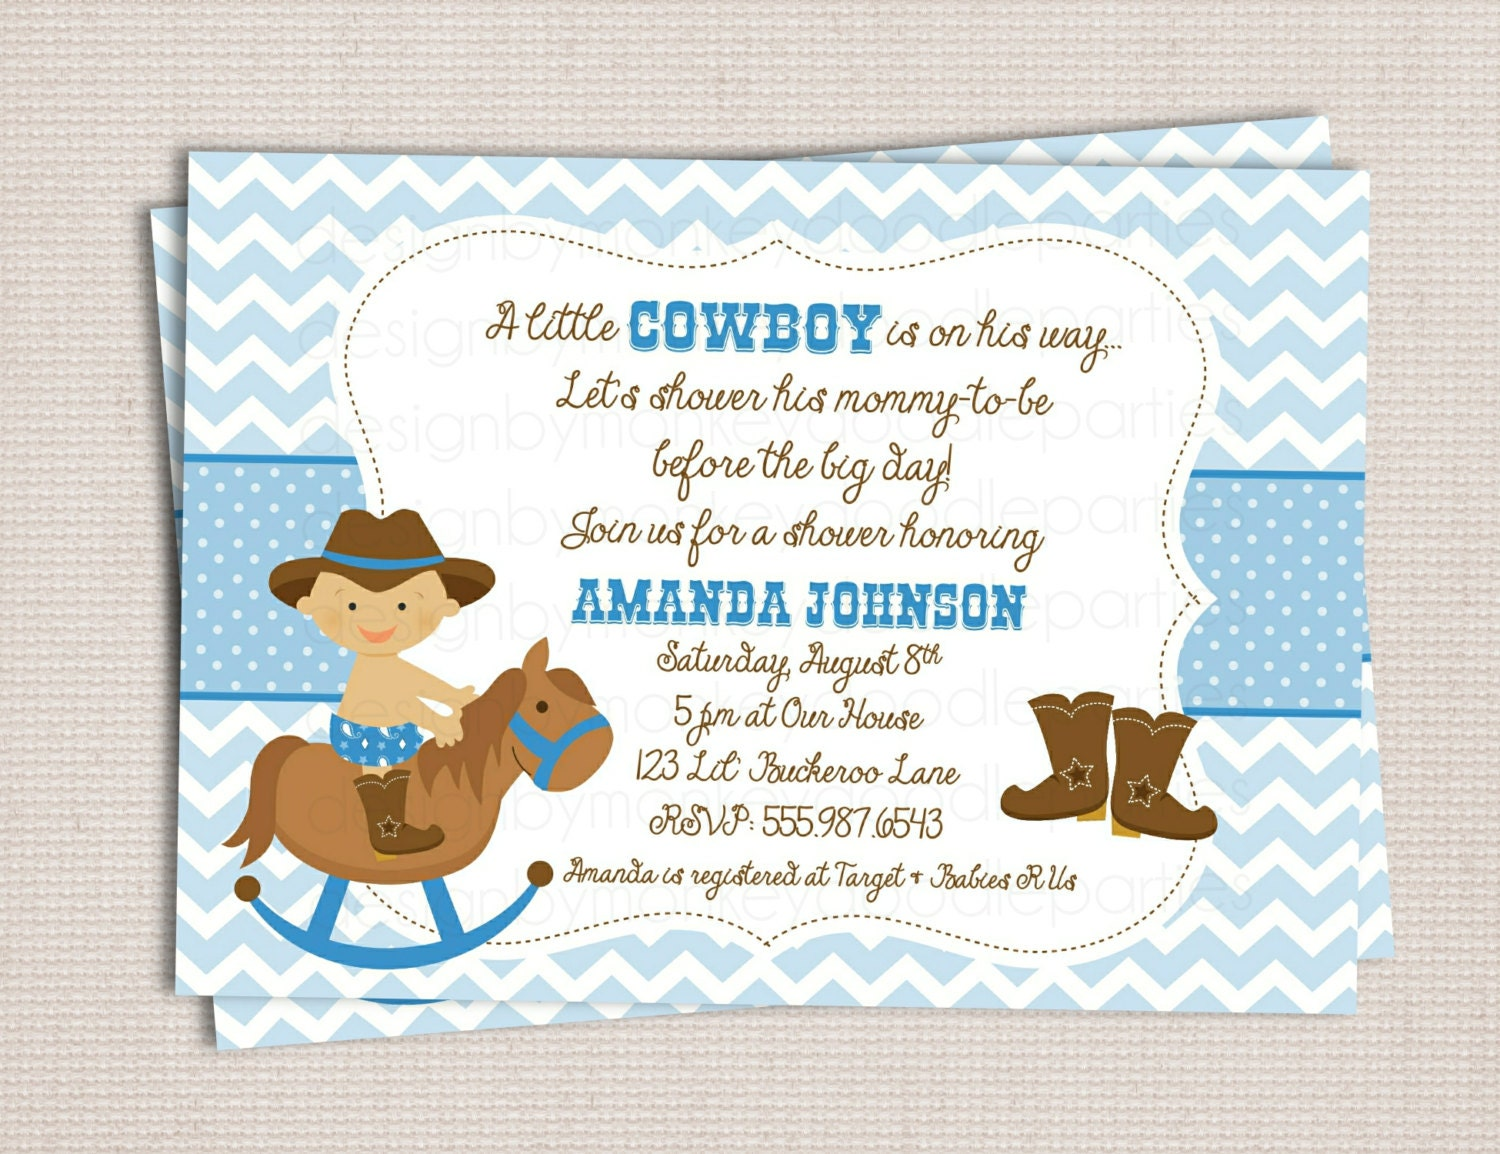 Baby Shower Cowboy Invitations for amazing invitation template